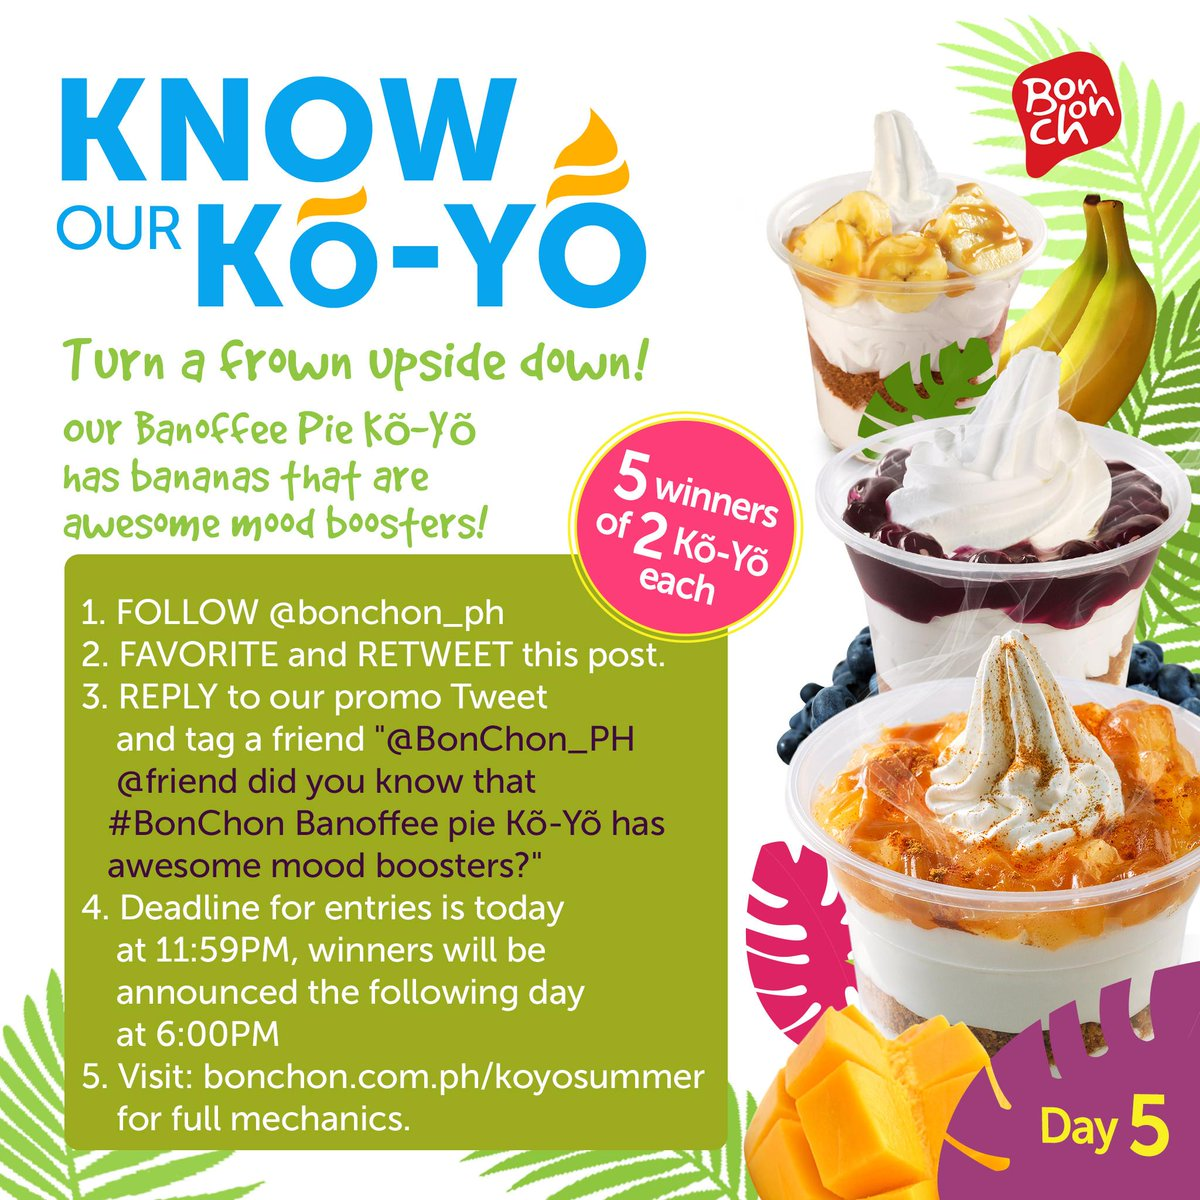 It's Day 5, here's something cool for everyone! Check out http://t.co/htpdgzrGx7 for full mechanics! #BonChon http://t.co/9FgiBxoxXl